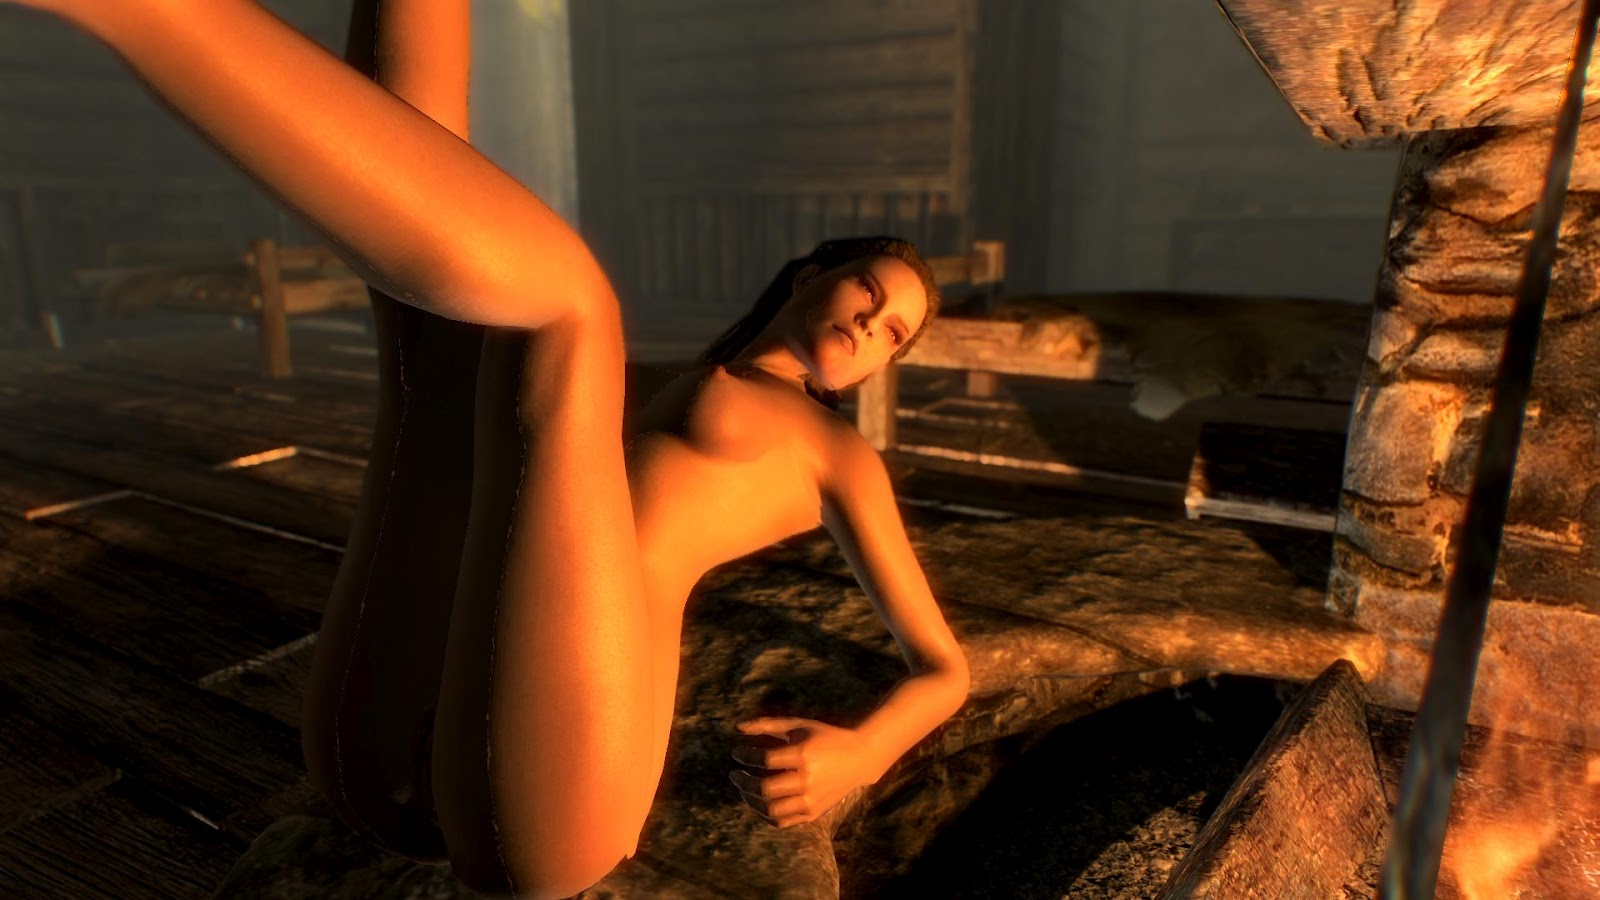 Naked pic of skyrim women and sex naked movie